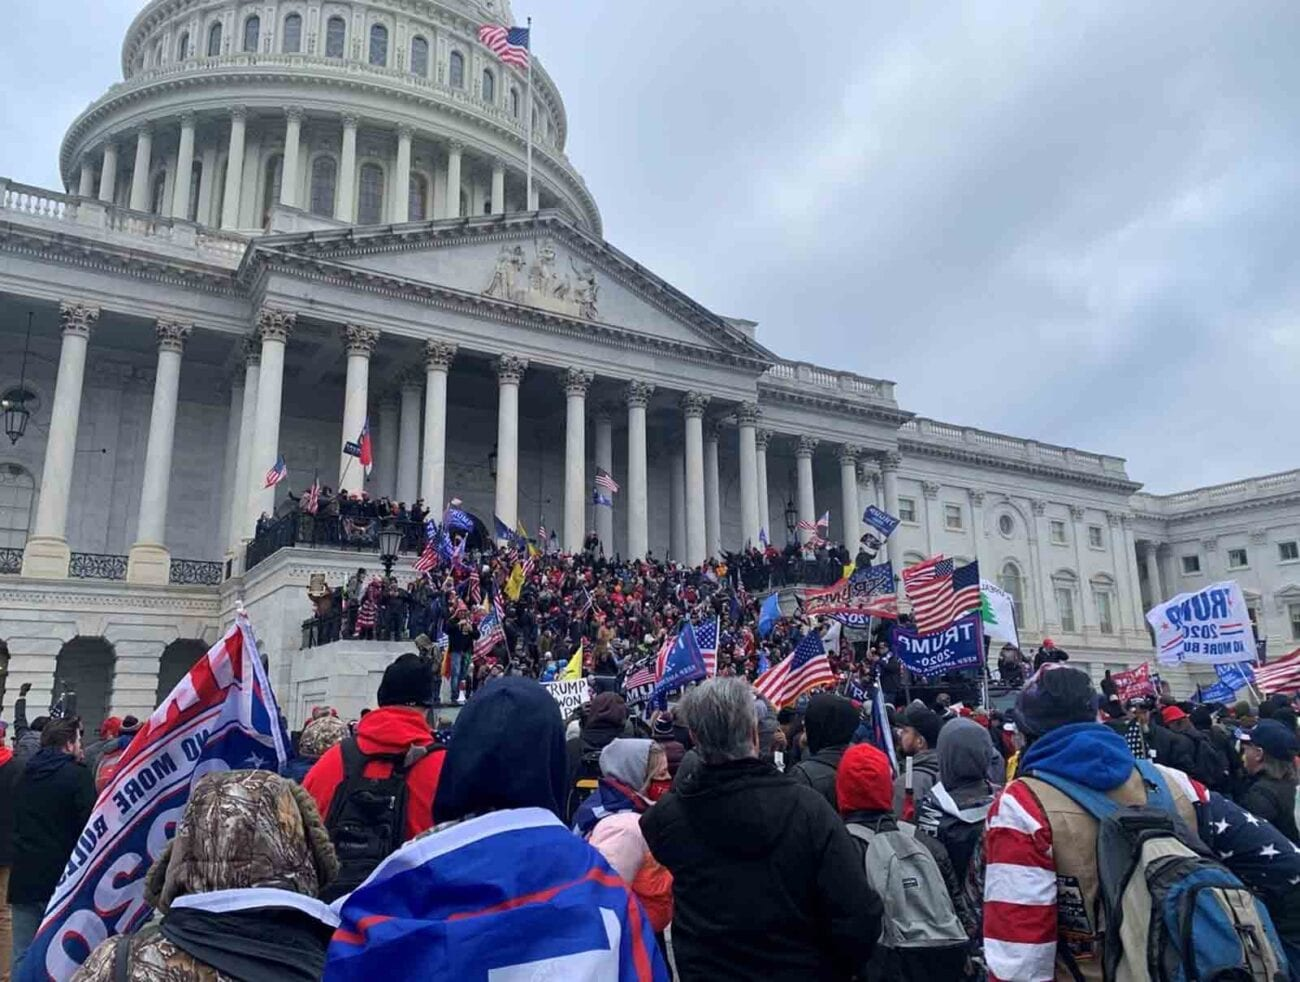 A lot has happened at the Capitol Building today, and some reports are also saying D.C. had multiple bomb threats.